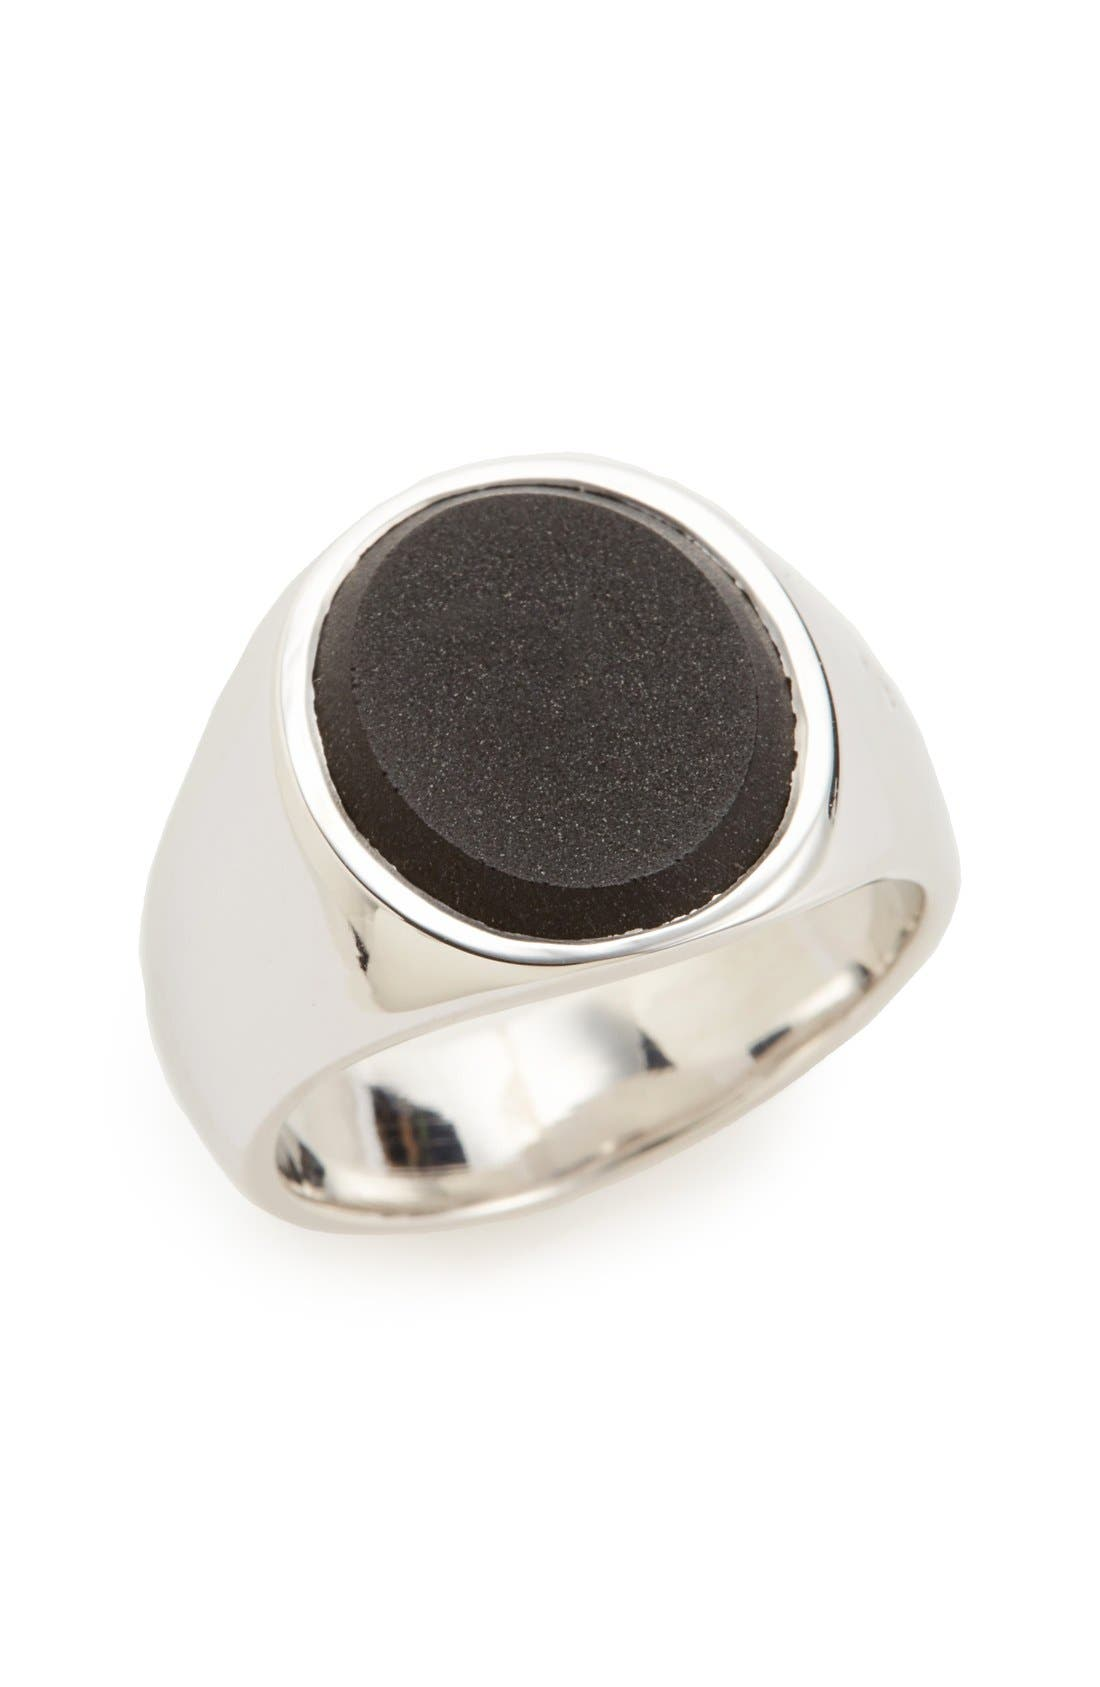 TOM WOOD Patriot Collection Oval Black Onyx Signet Ring